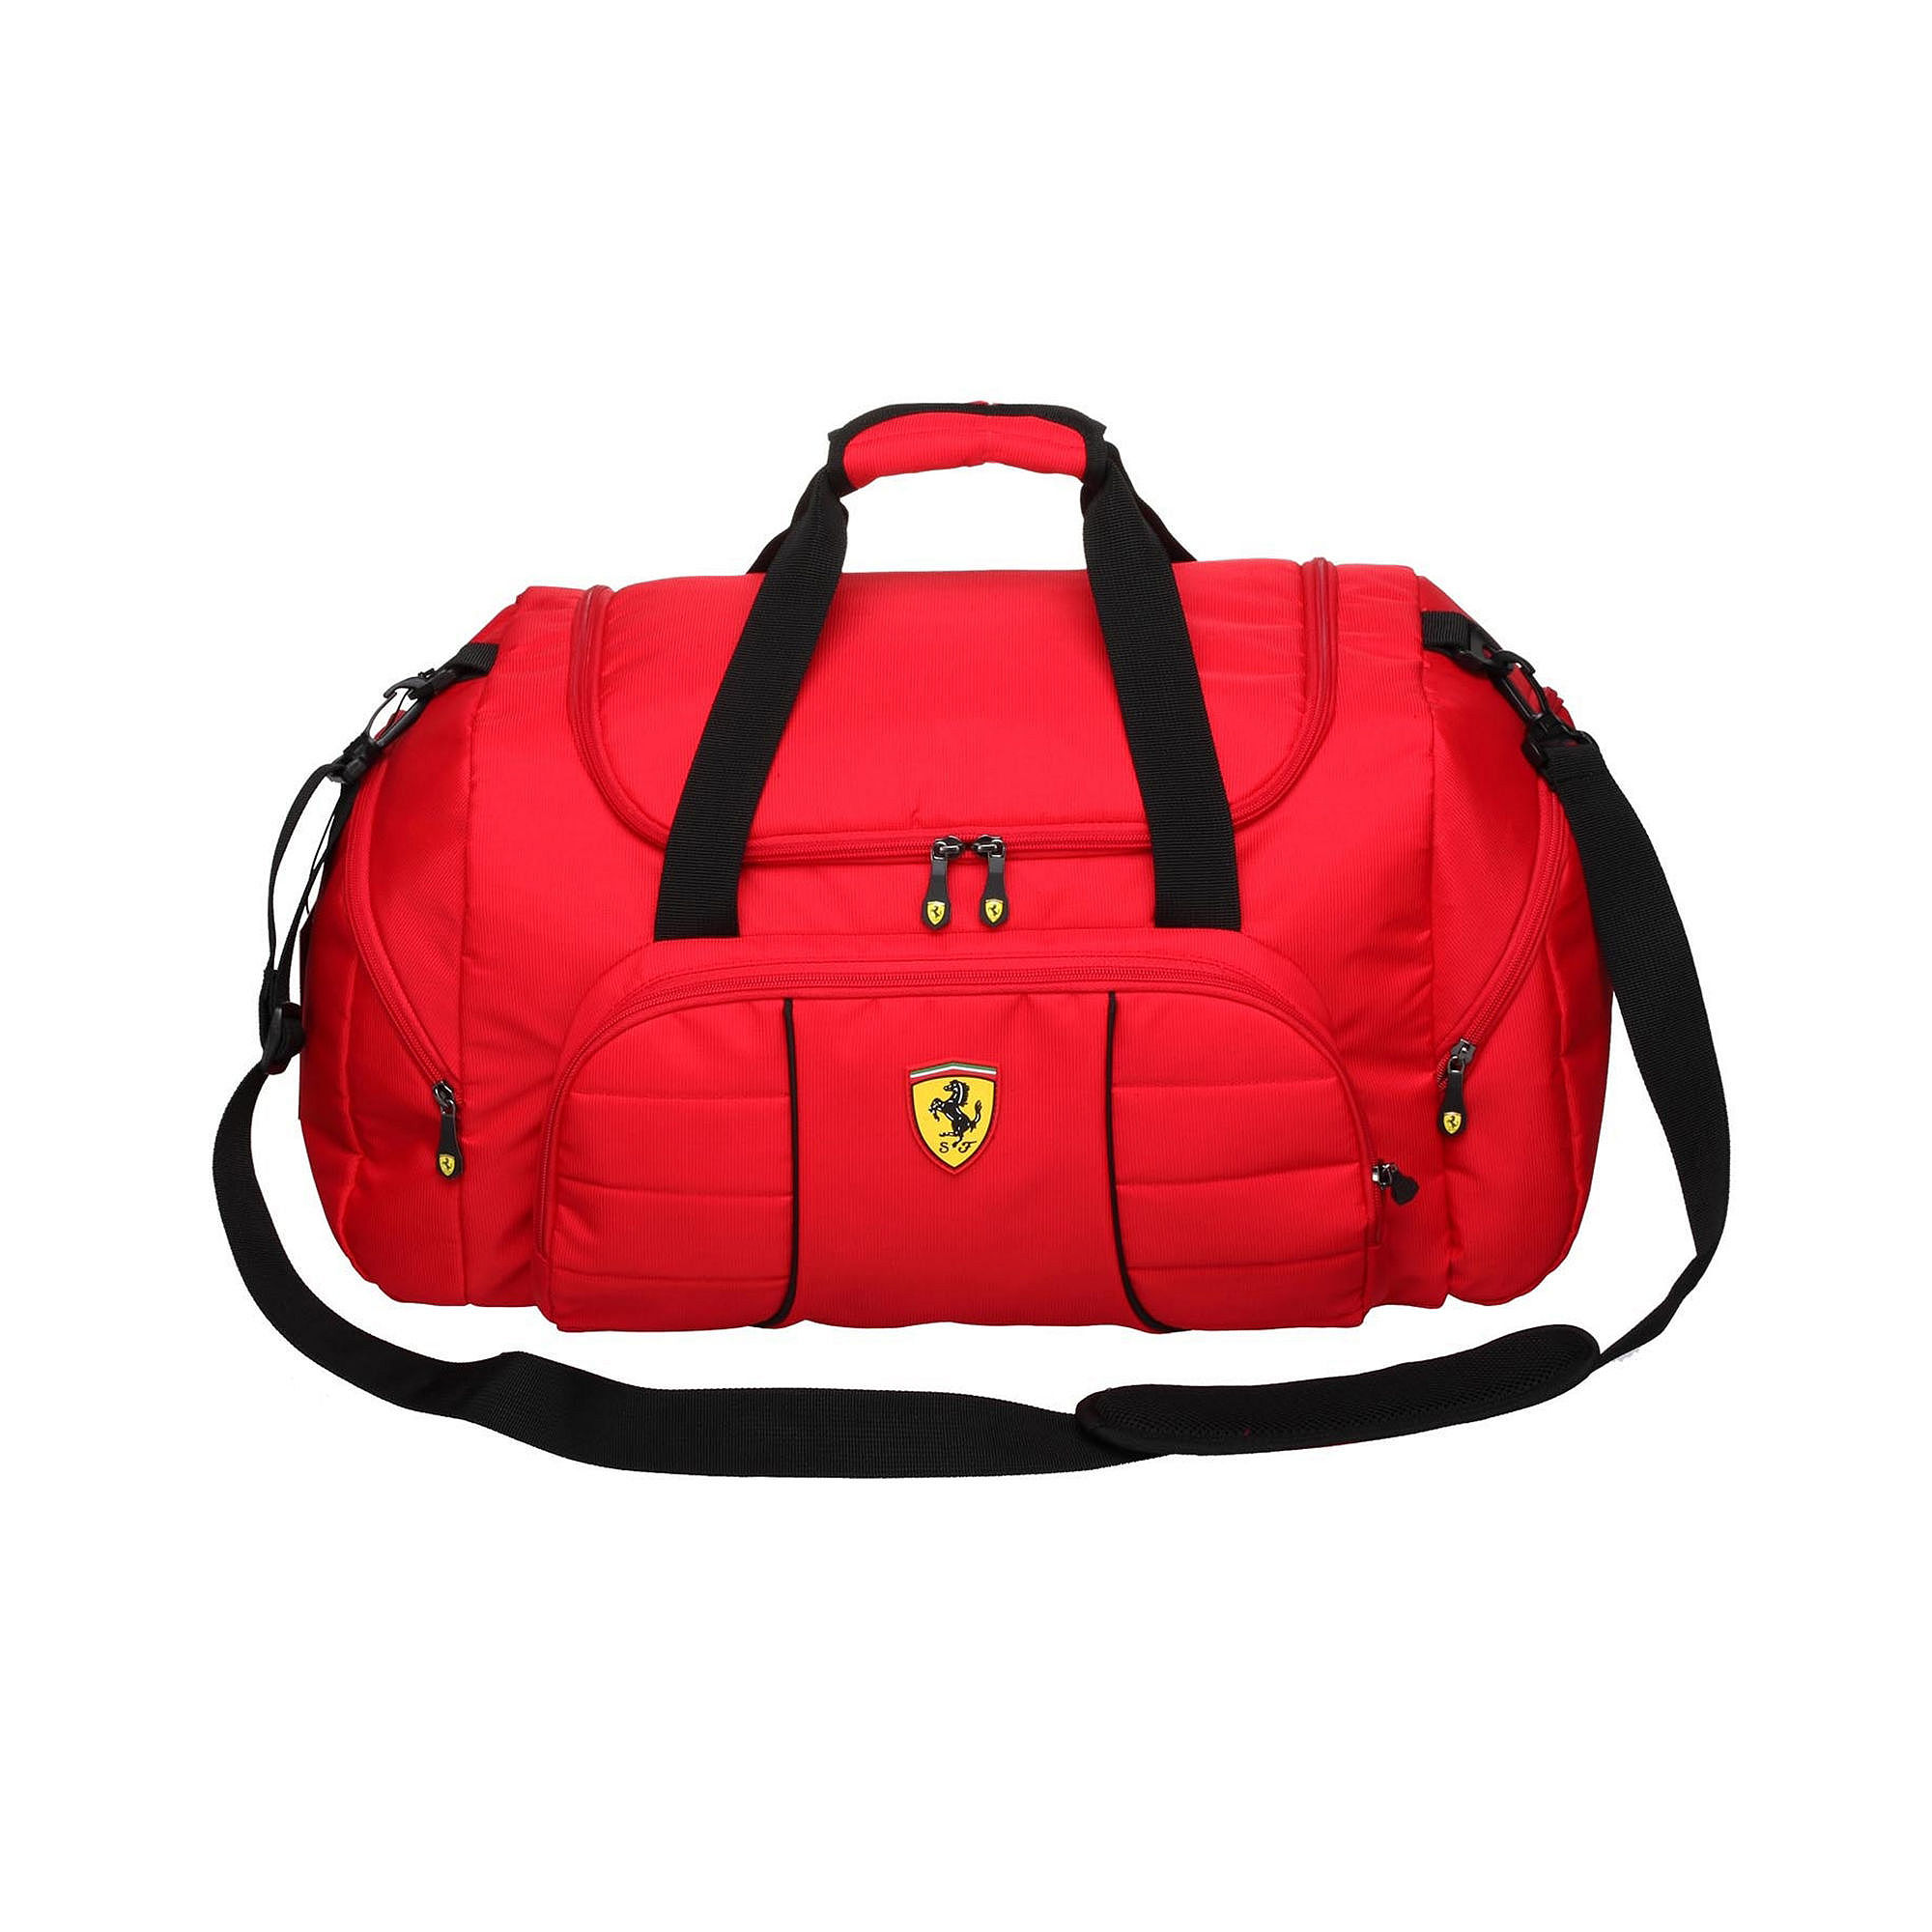 Ferrari Overnight Bag